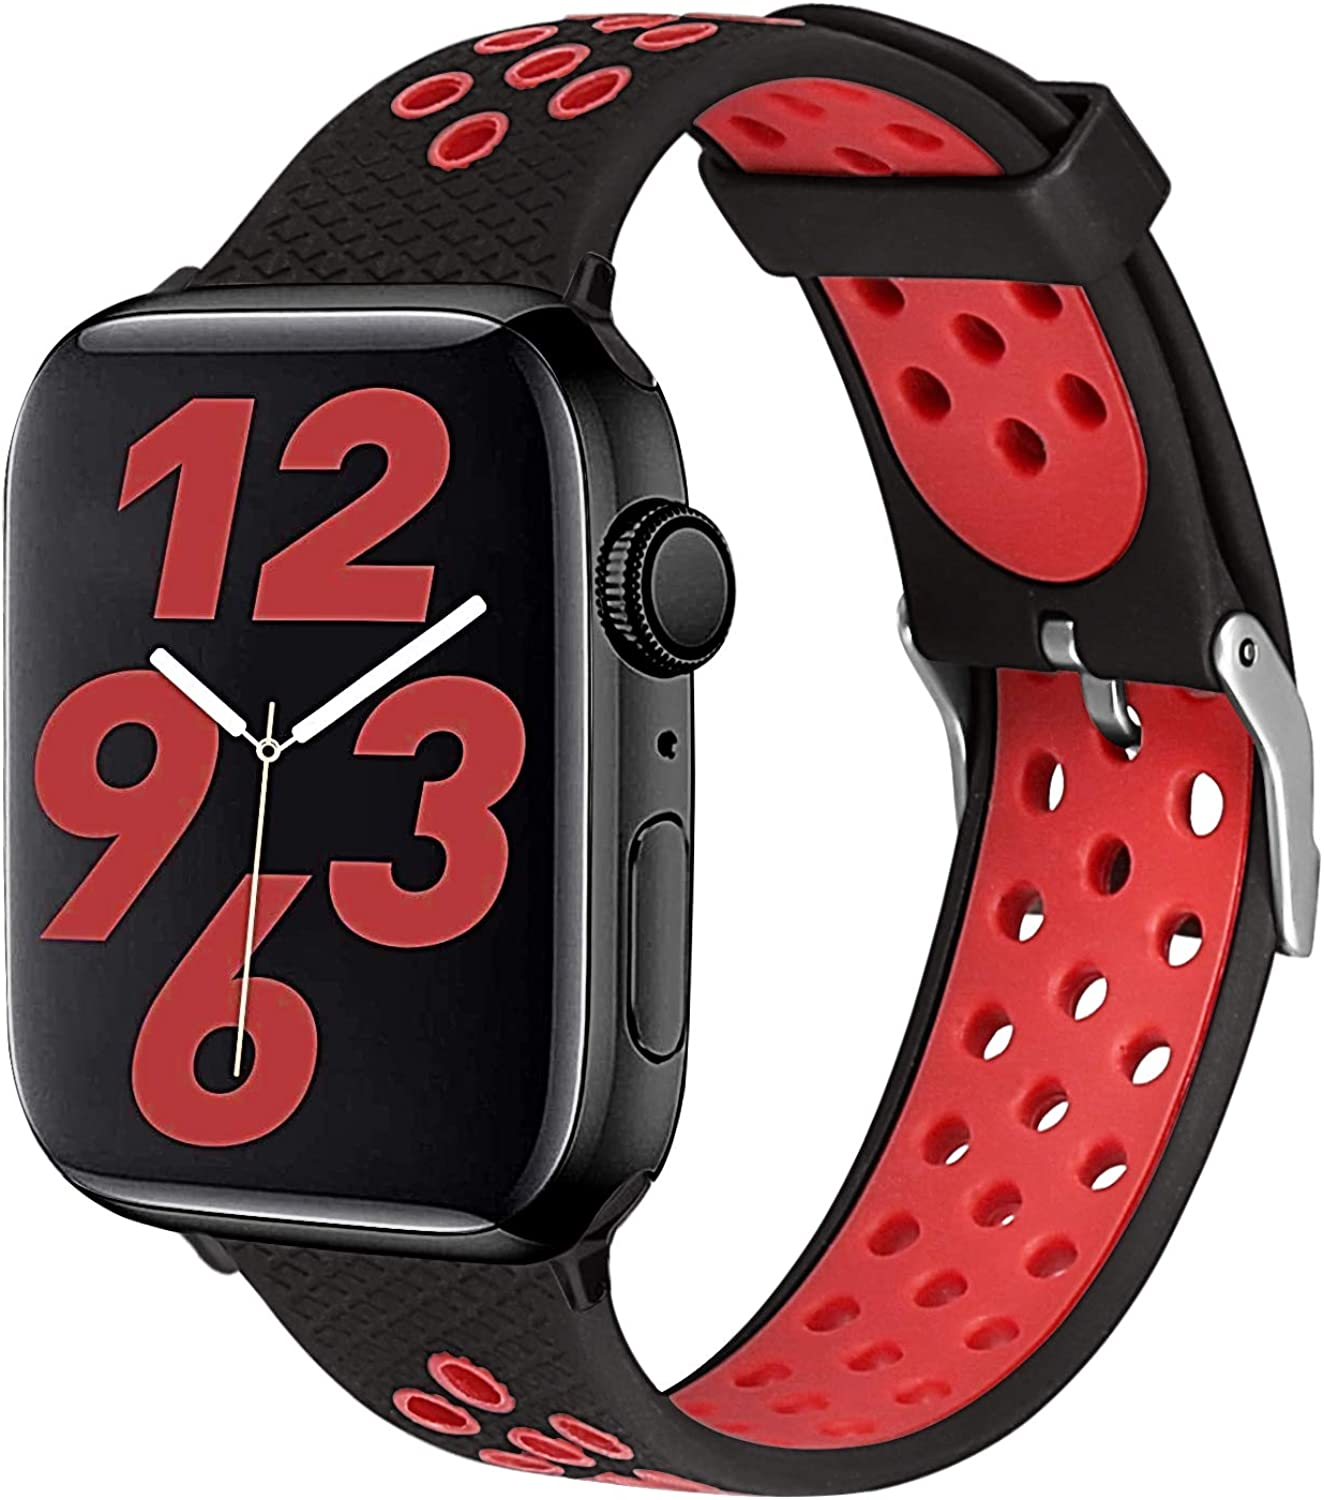 SKYLET Compatible with Apple Watch Bands 44mm 40mm Series 6/5/4/SE 42mm 38mm Series 3/2/1 Men Women, Soft Sport Silicone Breathable Wristbands Replacement iWatch Straps